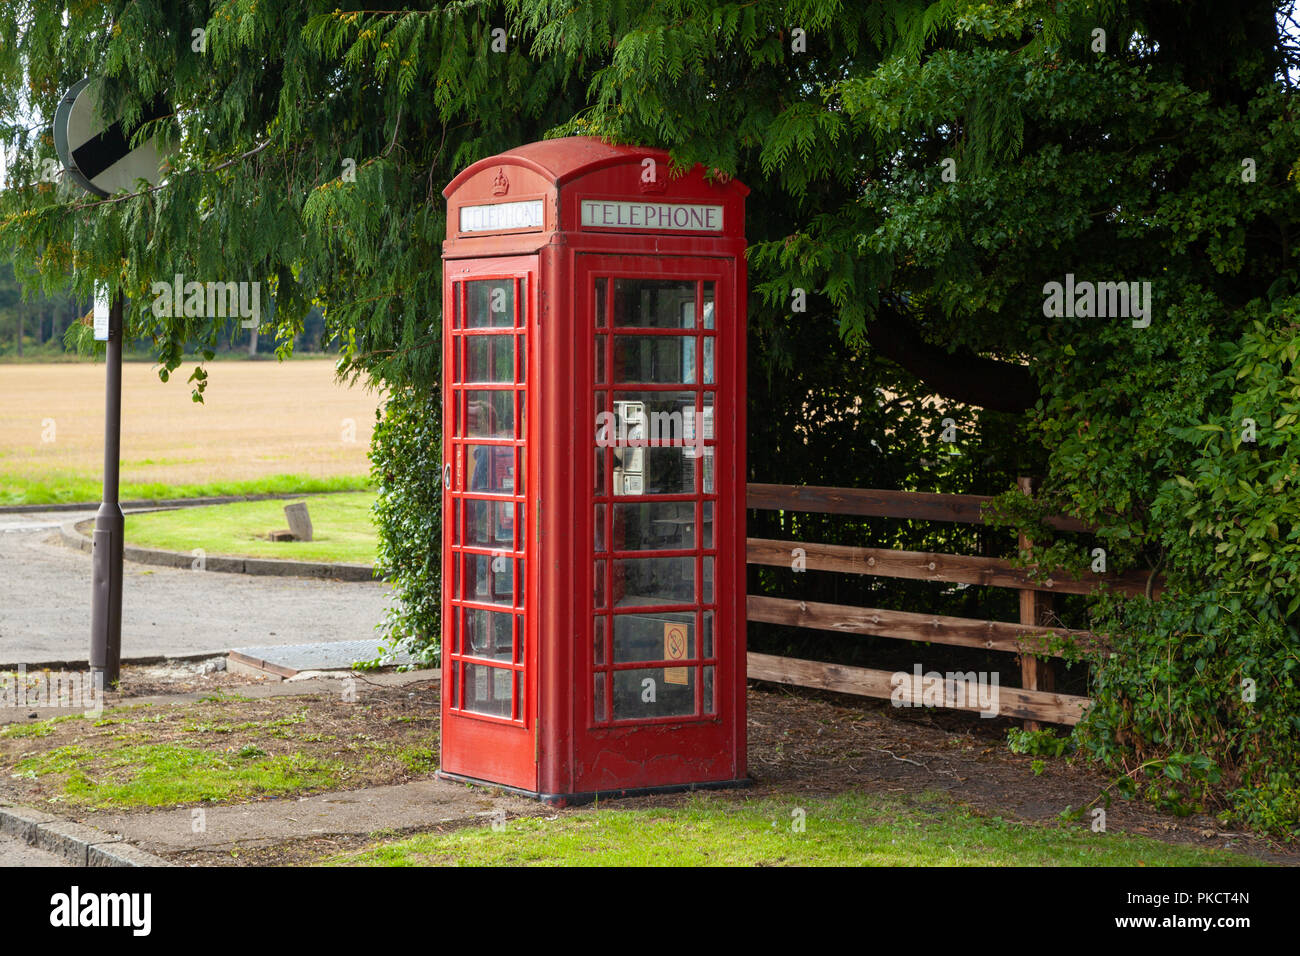 An old red British telephone box at Dunmore village near Airth Scotland. - Stock Image